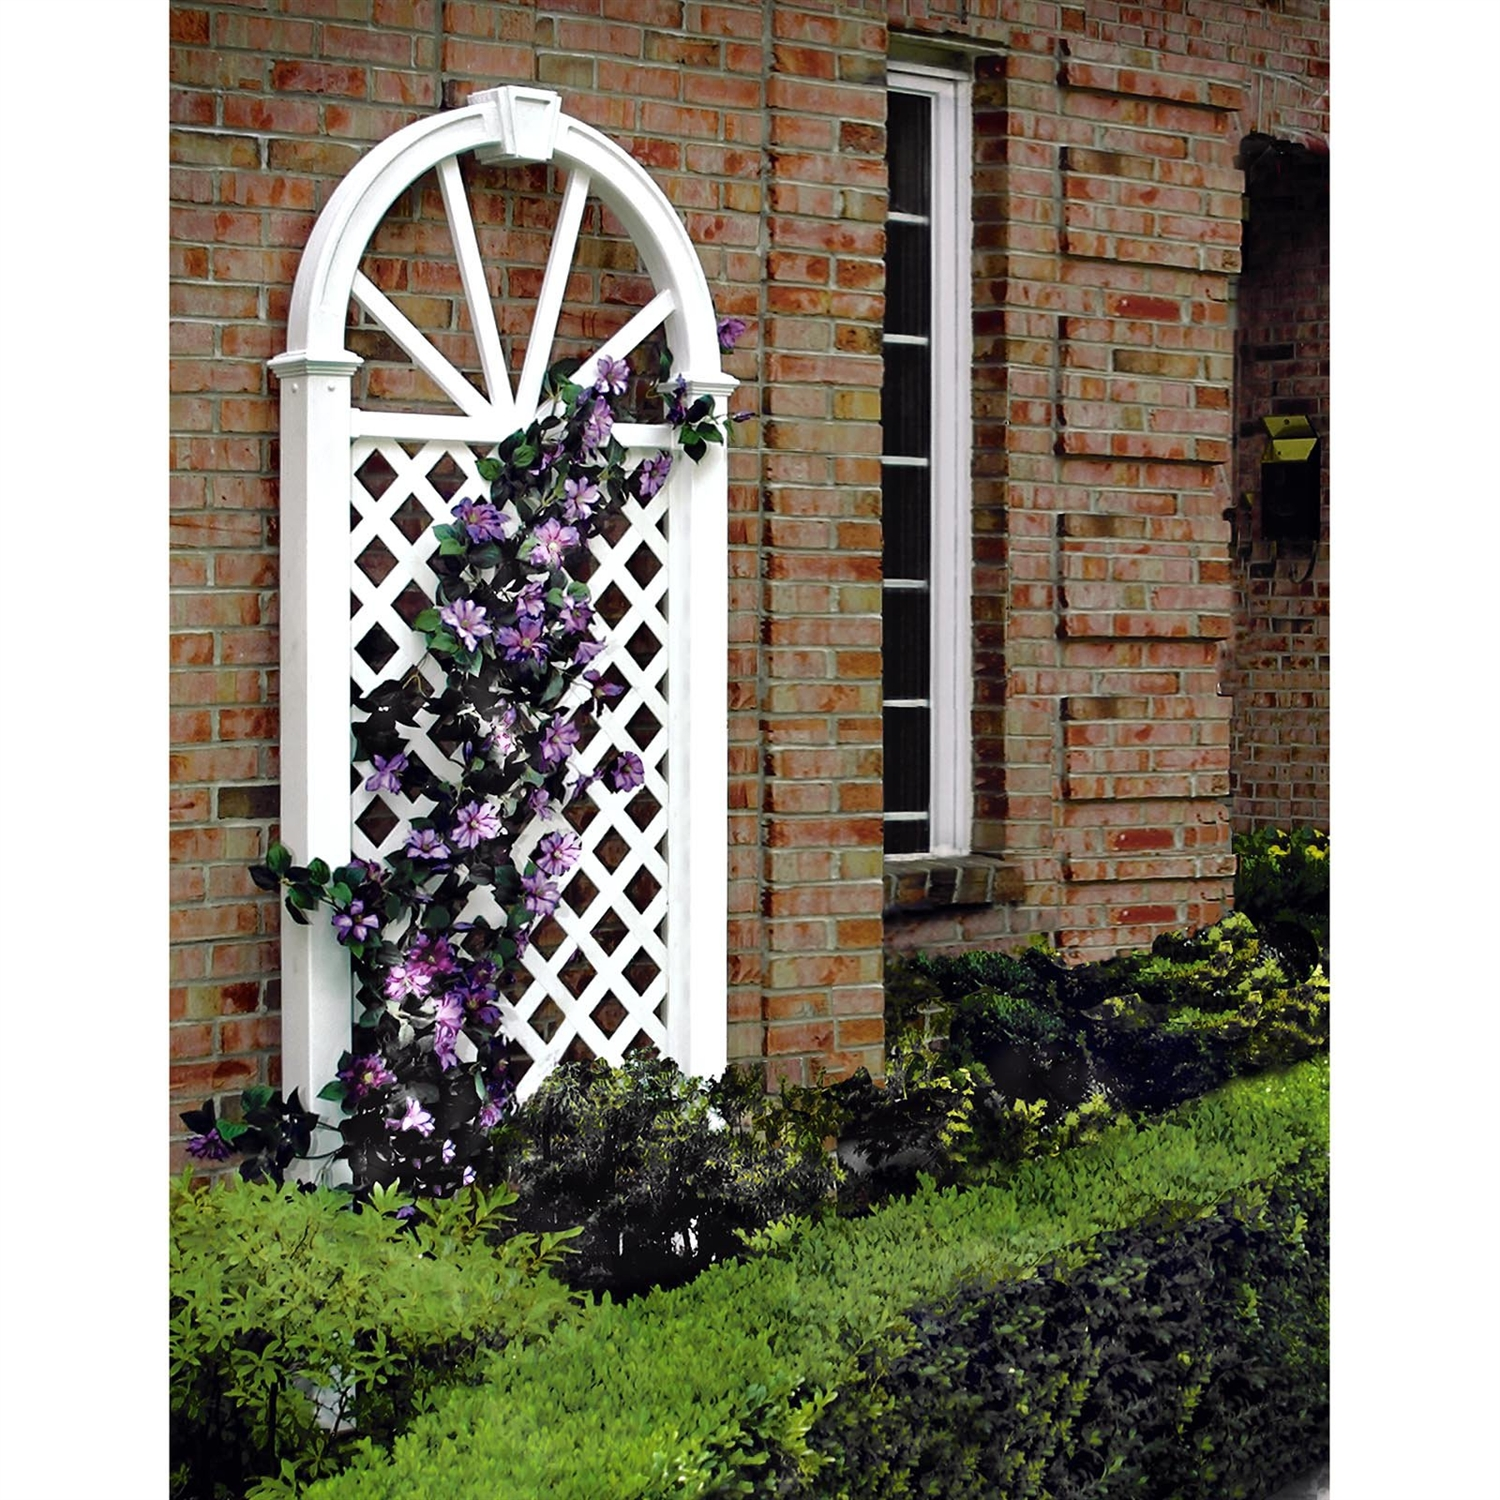 7-Ft Garden Trellis in White Vinyl with Arch Top, NVAT1995148 :  This 7-Ft Garden Trellis in White Vinyl with Arch Top exudes beauty through its eye-pleasing design. This classic garden trellis can be placed against an outside wall or used anywhere in your yard or garden. Provides visual appeal and privacy near pools or hot tubs. The traditional lattice panel is the perfect foundation for flowers, plants, and climbing vines.